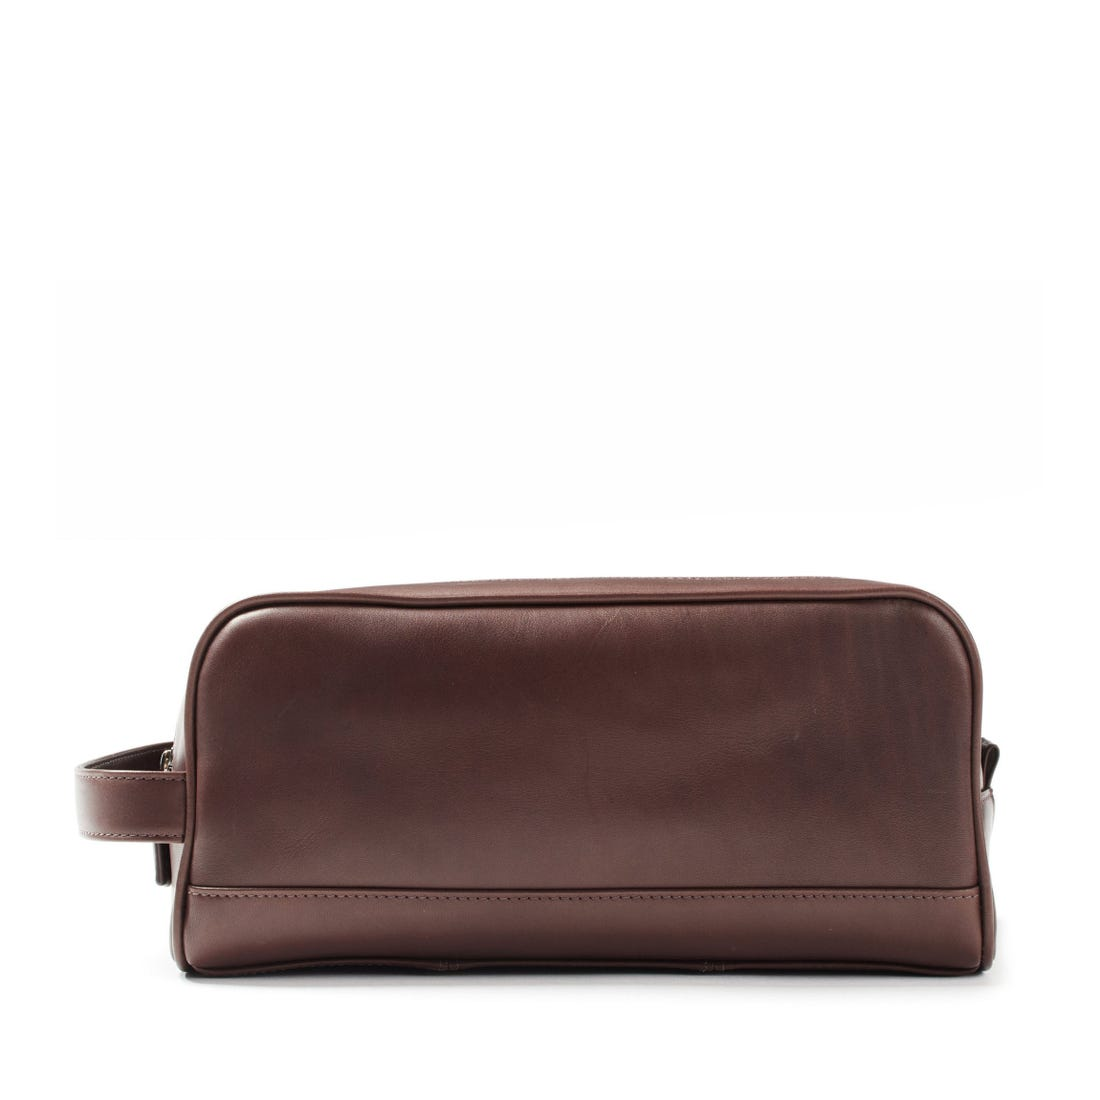 Double Zip Toiletry Bag